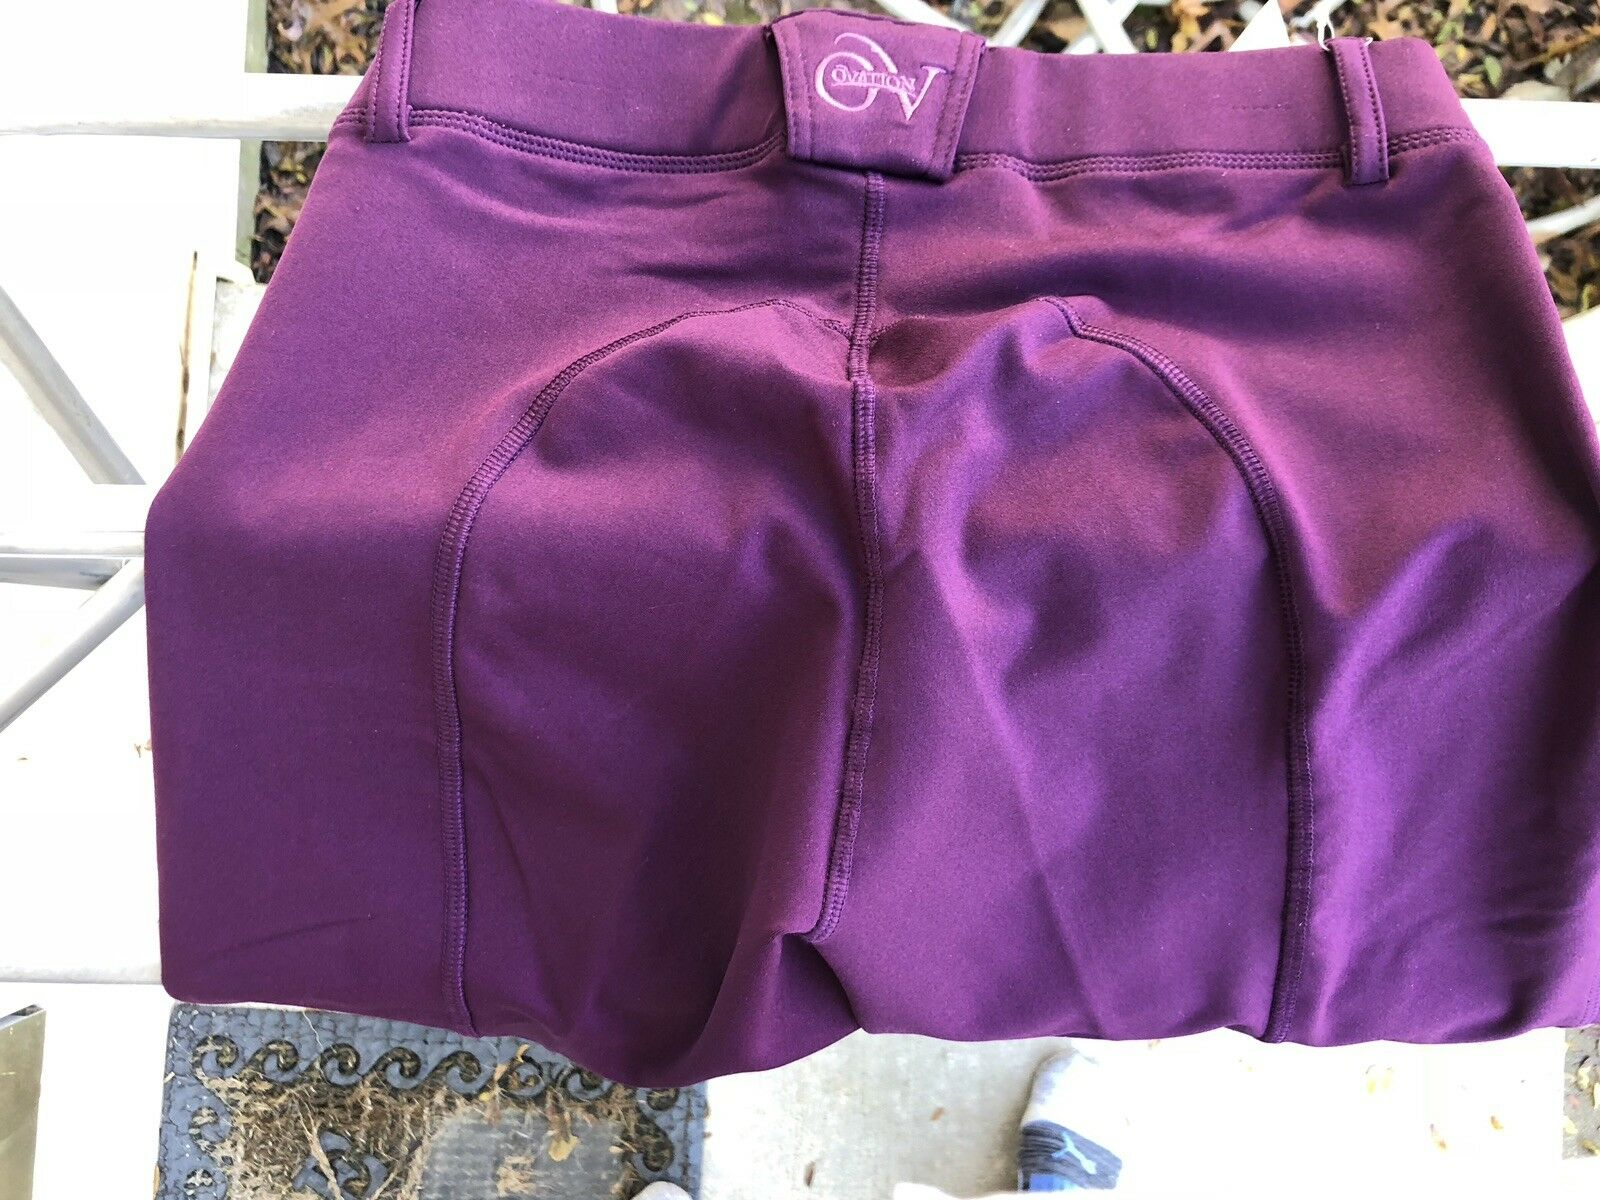 NEW Ovation Equinox 3 season breeches, ladies  26 Wine  free delivery and returns